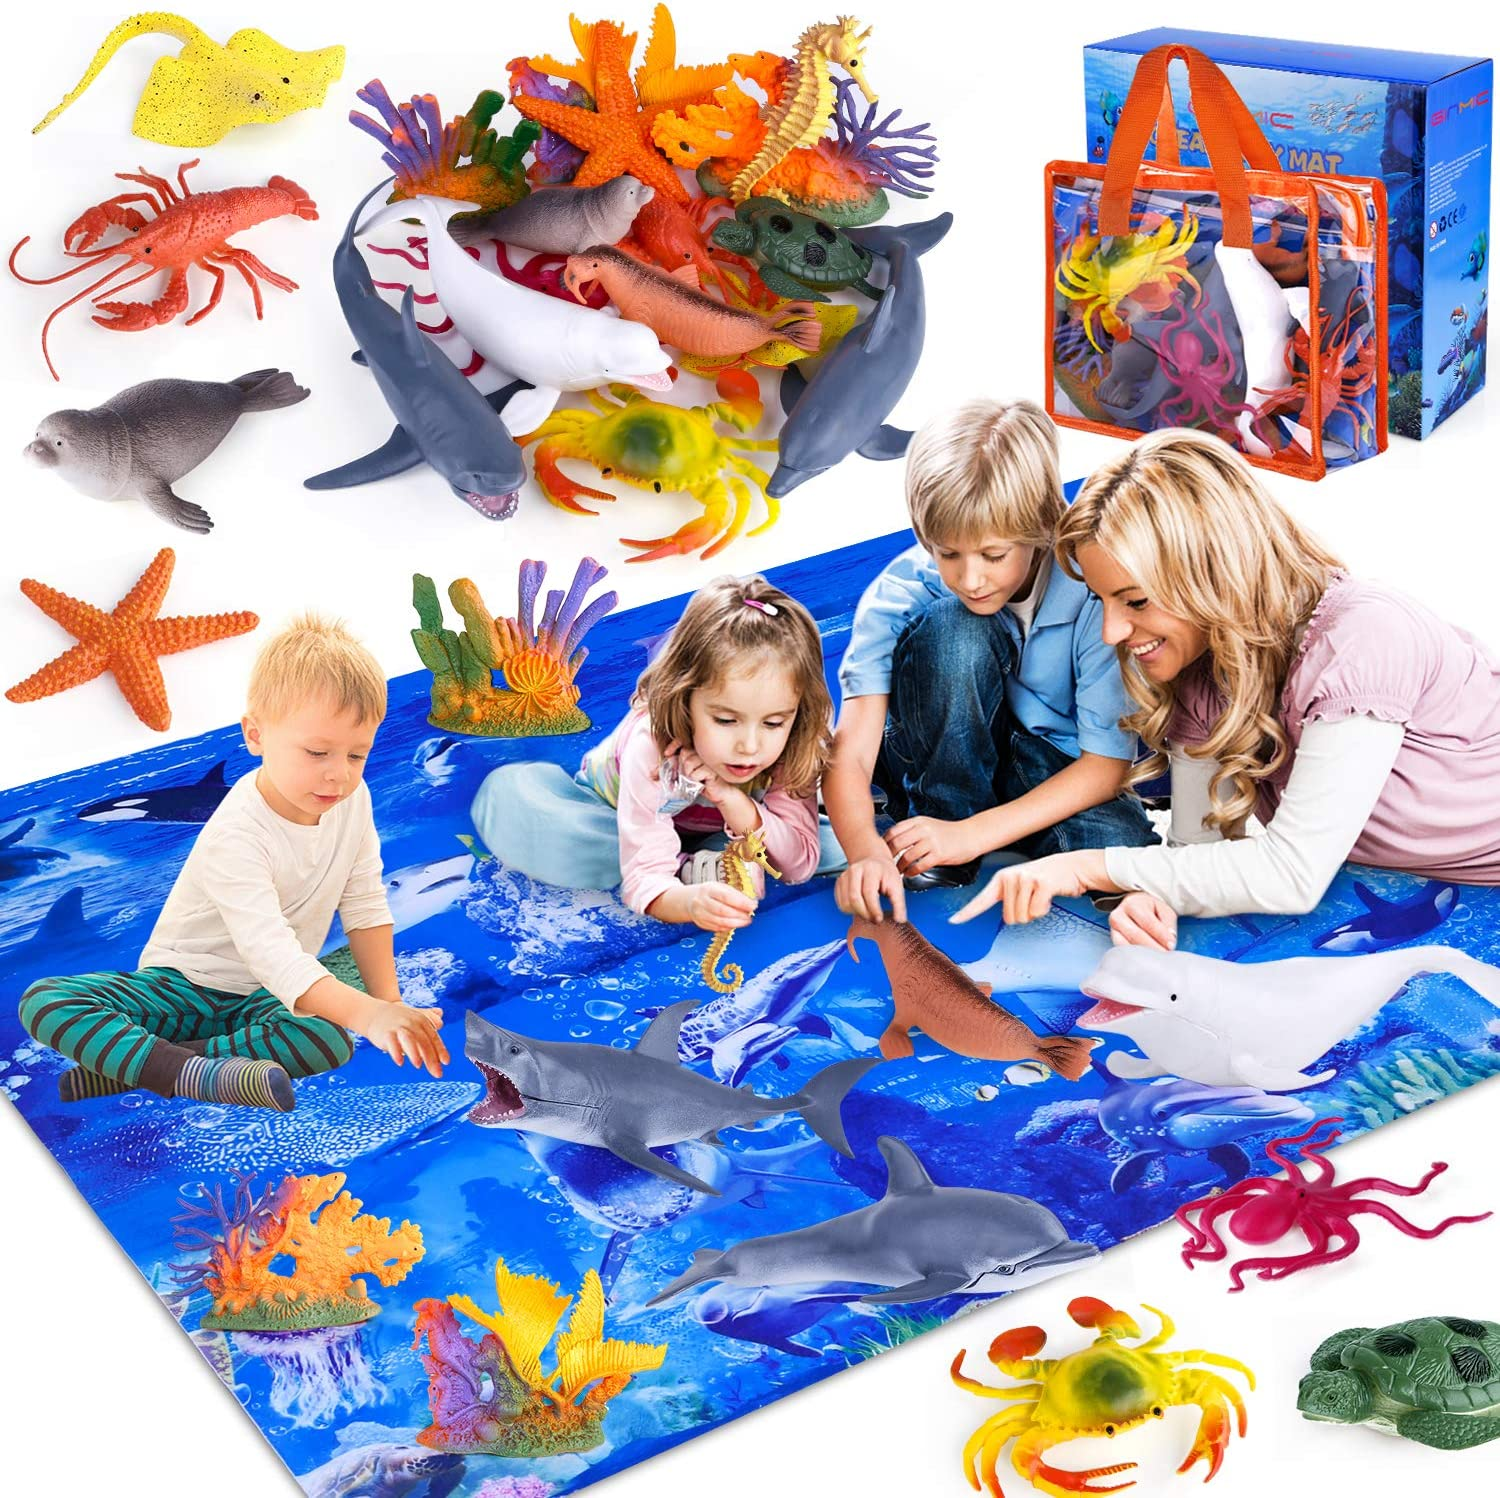 Today's only GINMIC Kids Ocean Animals Toys [Alternative dealer] with Pack Play Mat 18 Ass Large